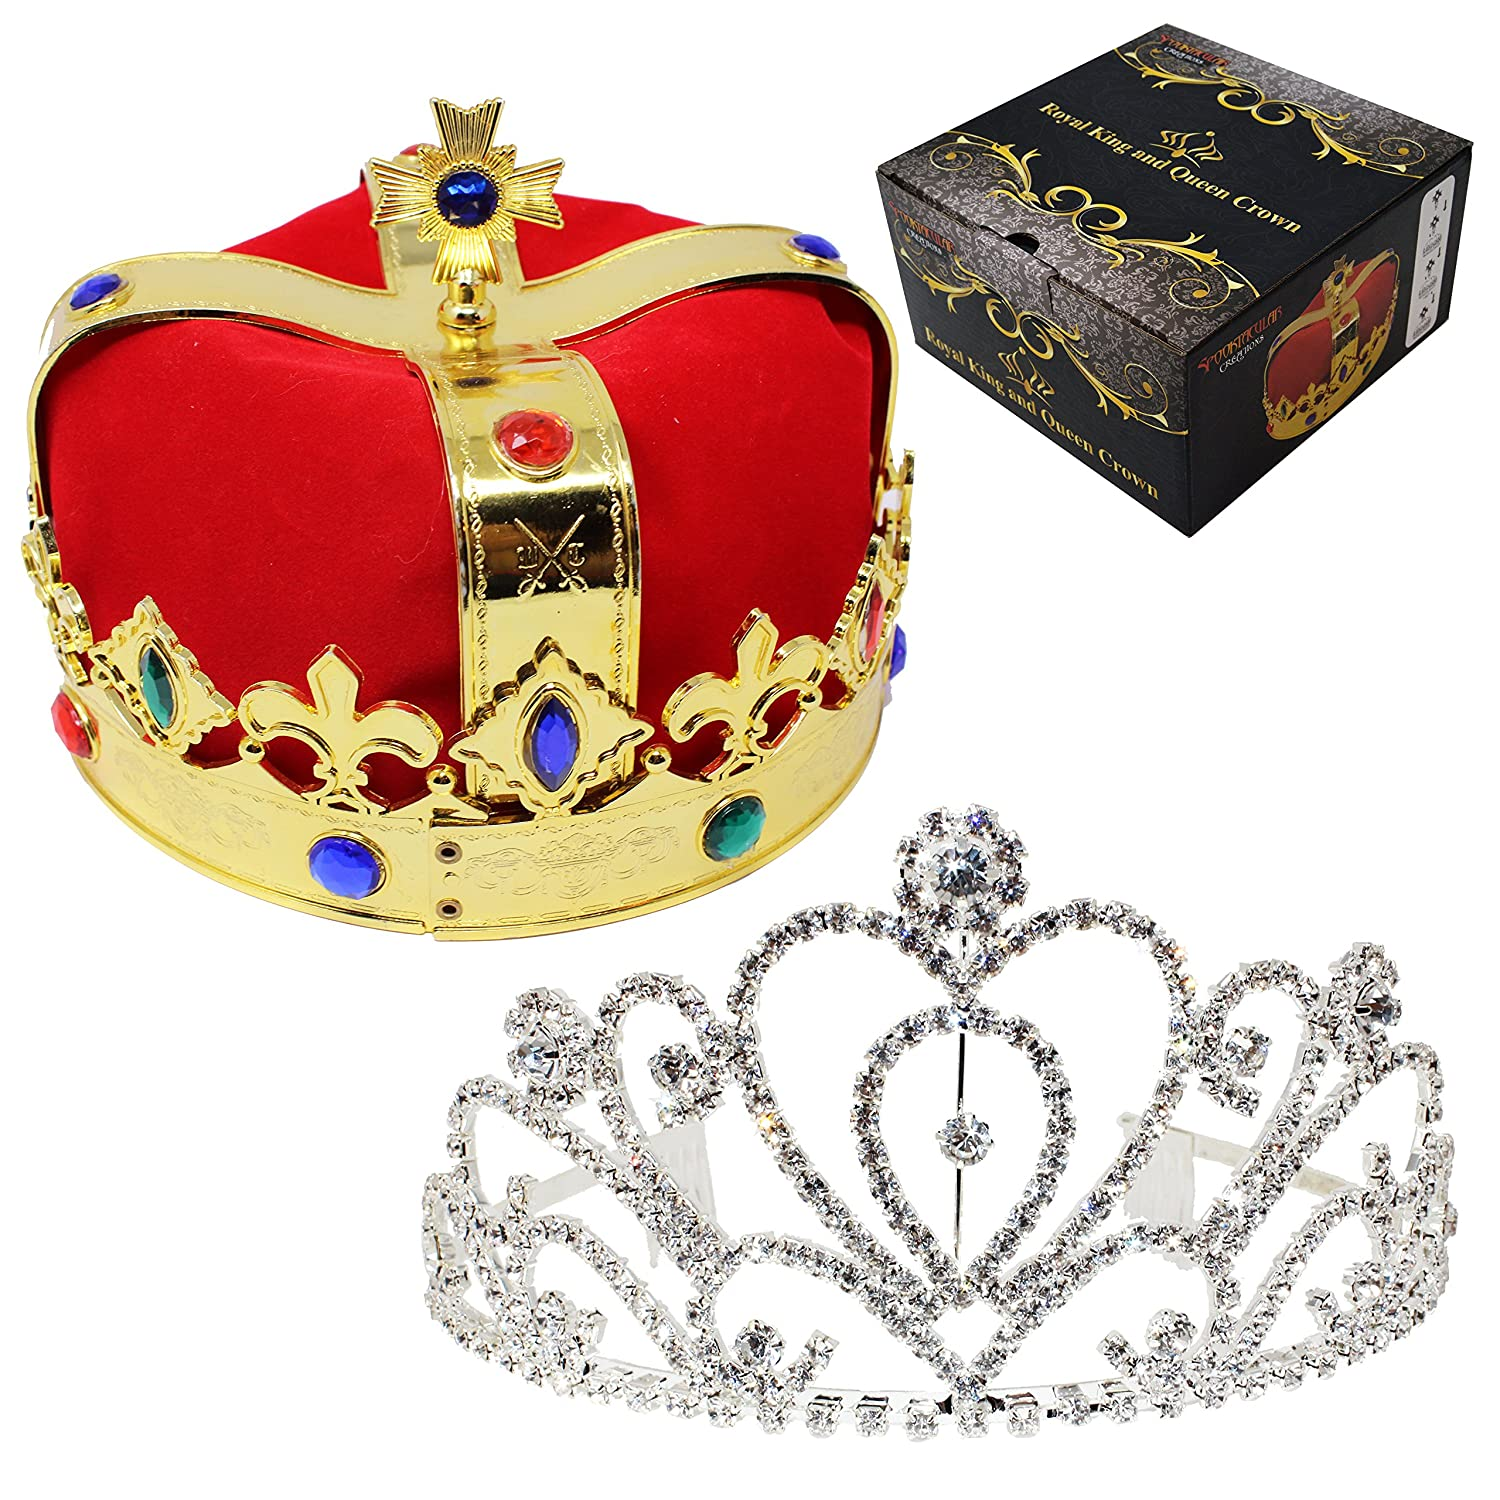 JOYIN Royal Jewleled 2 Pack King's and Queen's Royal Crowns - King Queen Halloween Costume Prom Accessories Joyin Inc